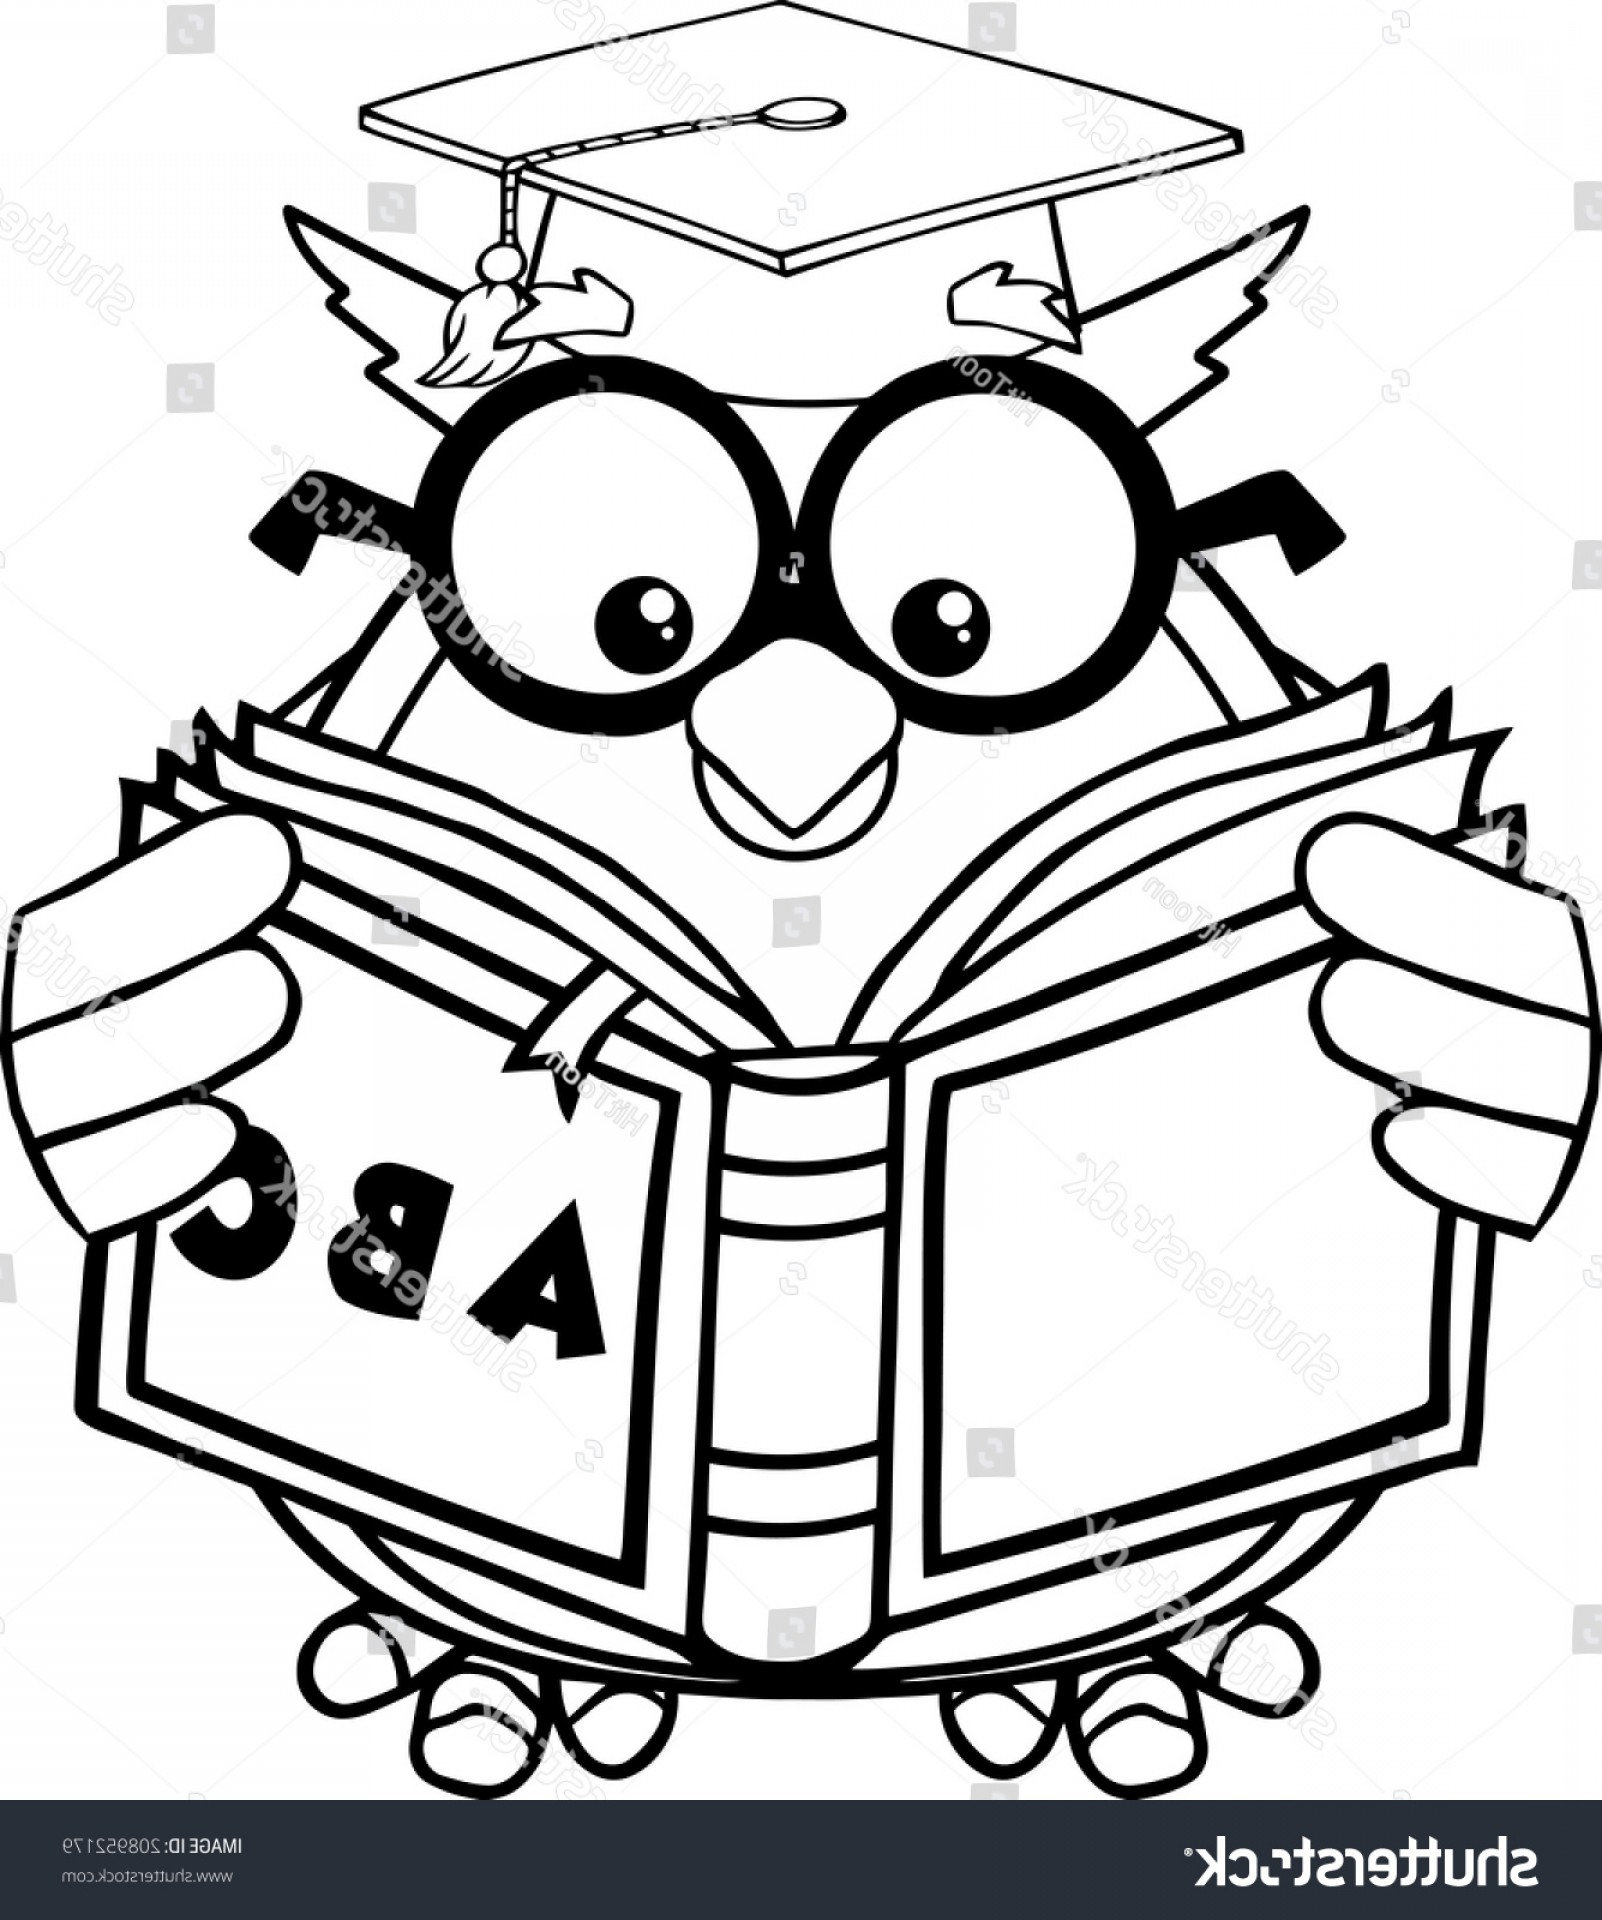 Wise owl clipart black and white transparent library Black White Wise Owl Teacher Cartoon | SOIDERGI transparent library